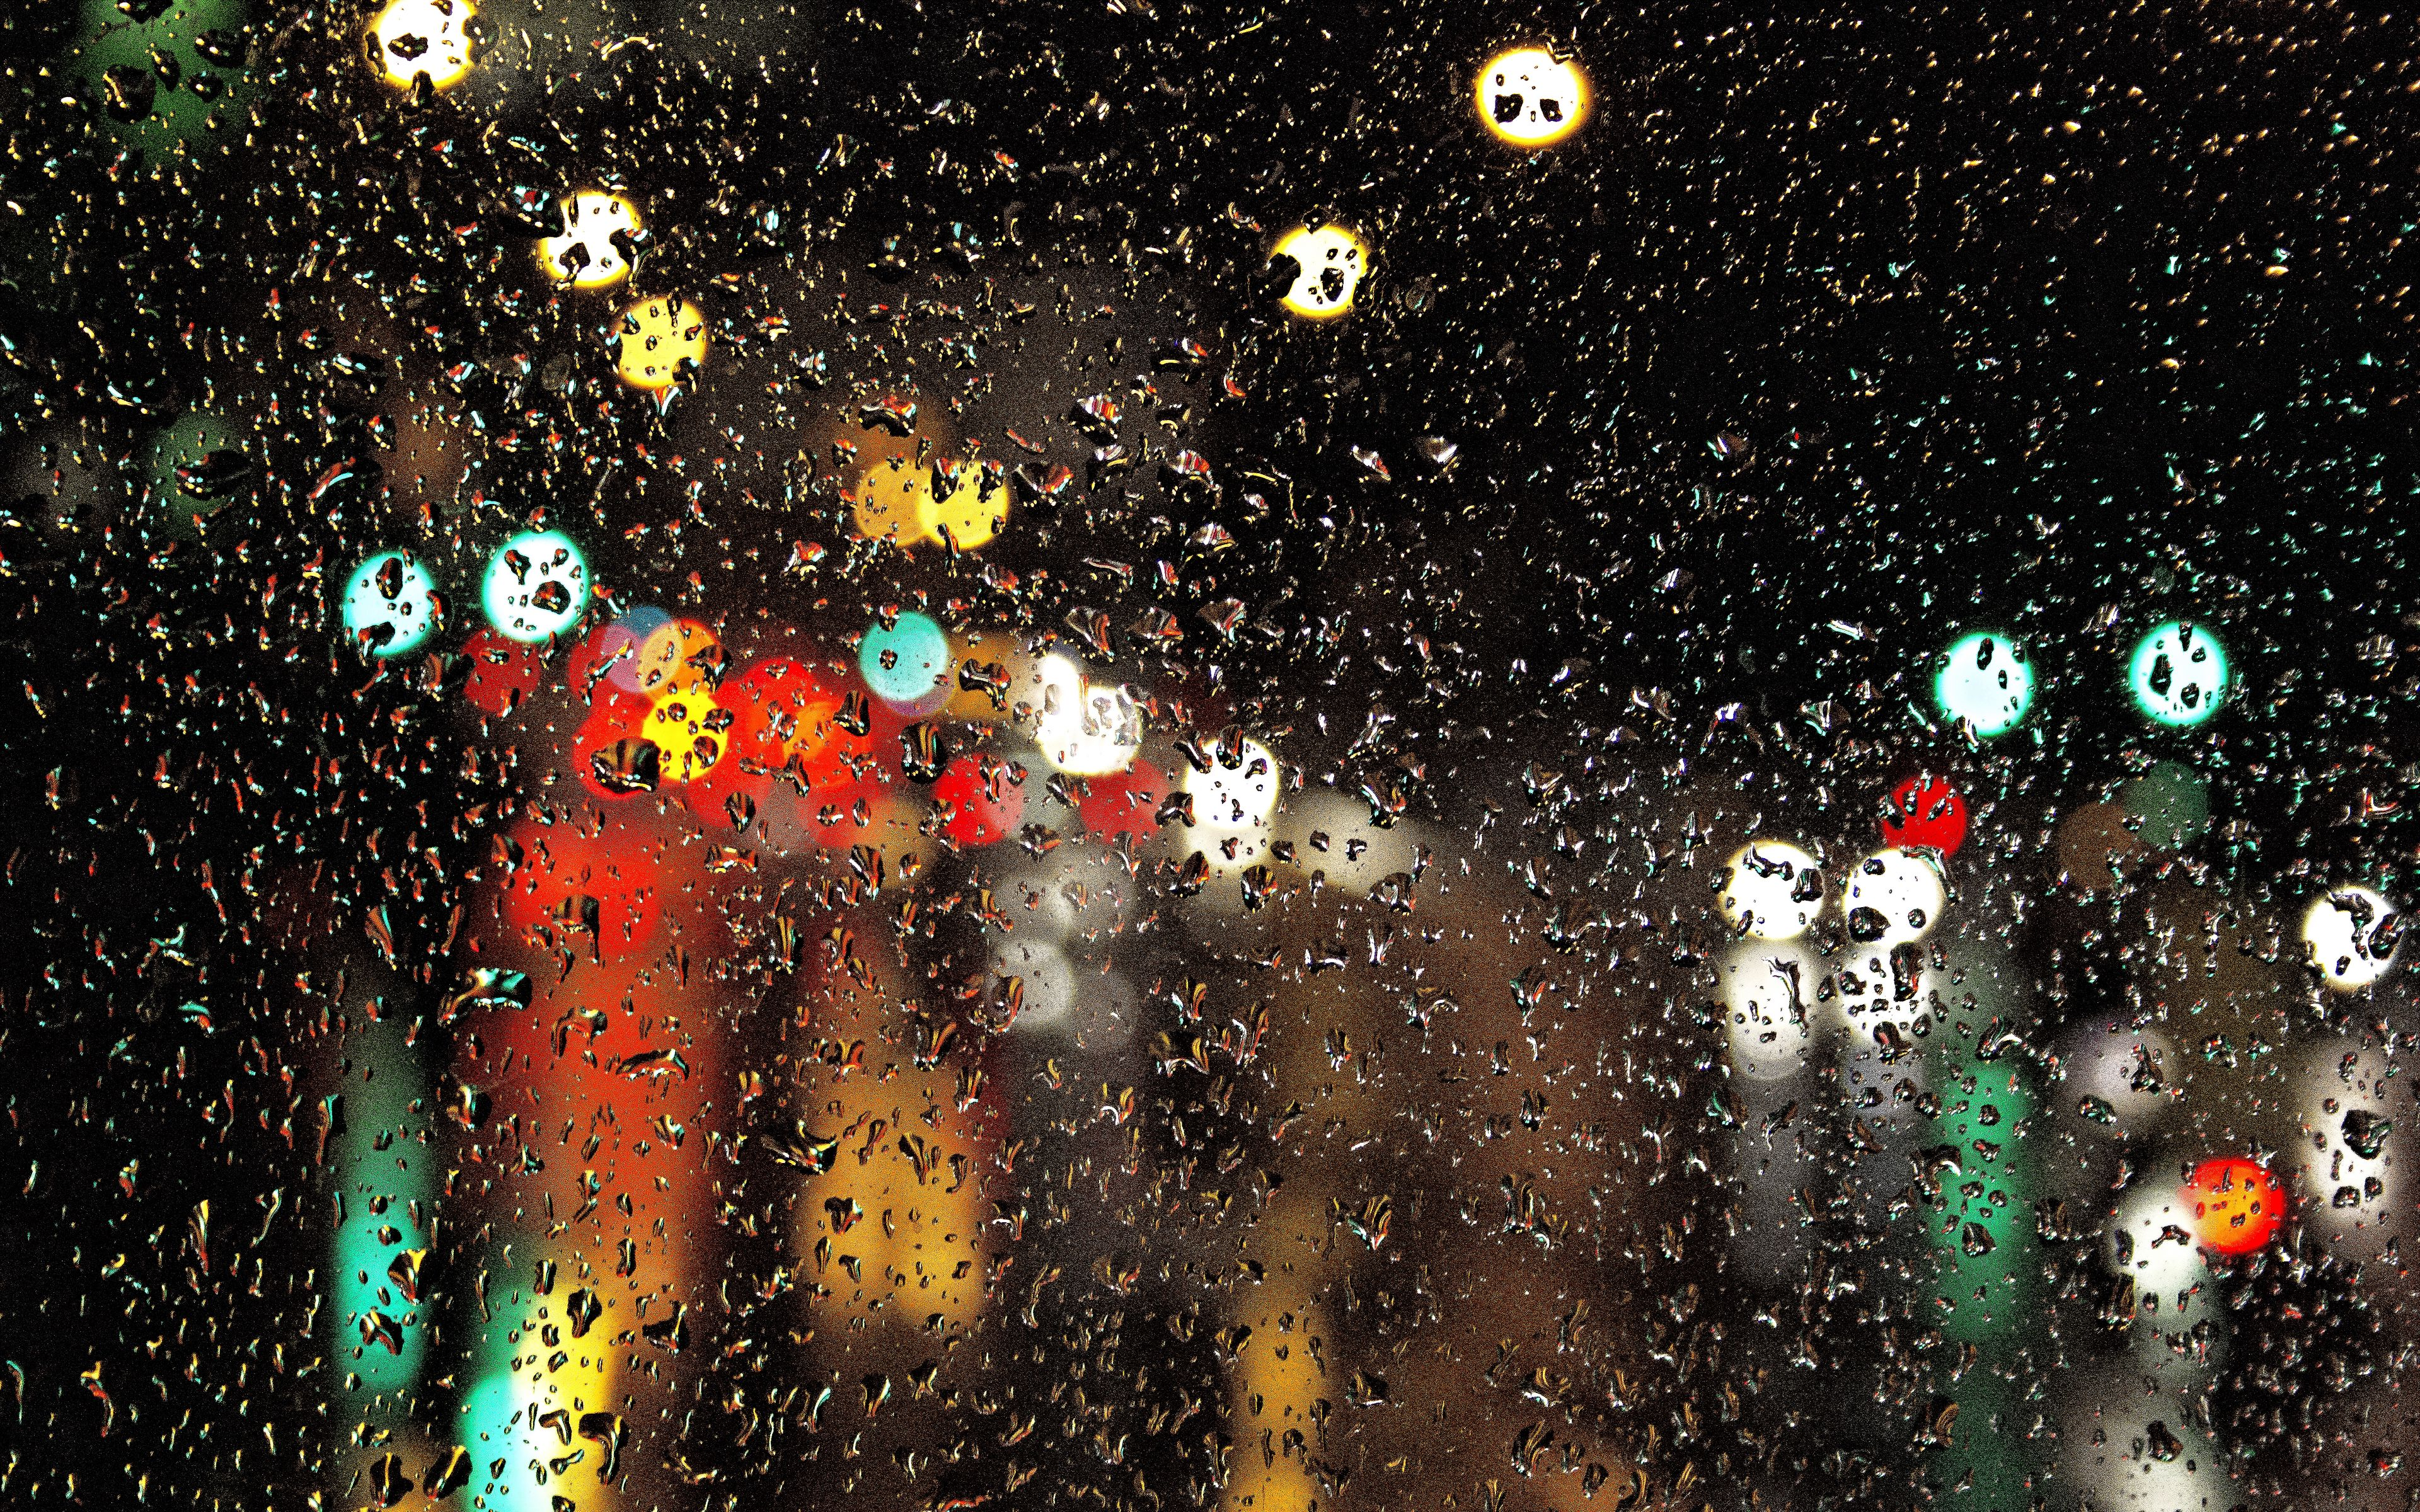 Wallpaper Traffic lights through glass with rain drop